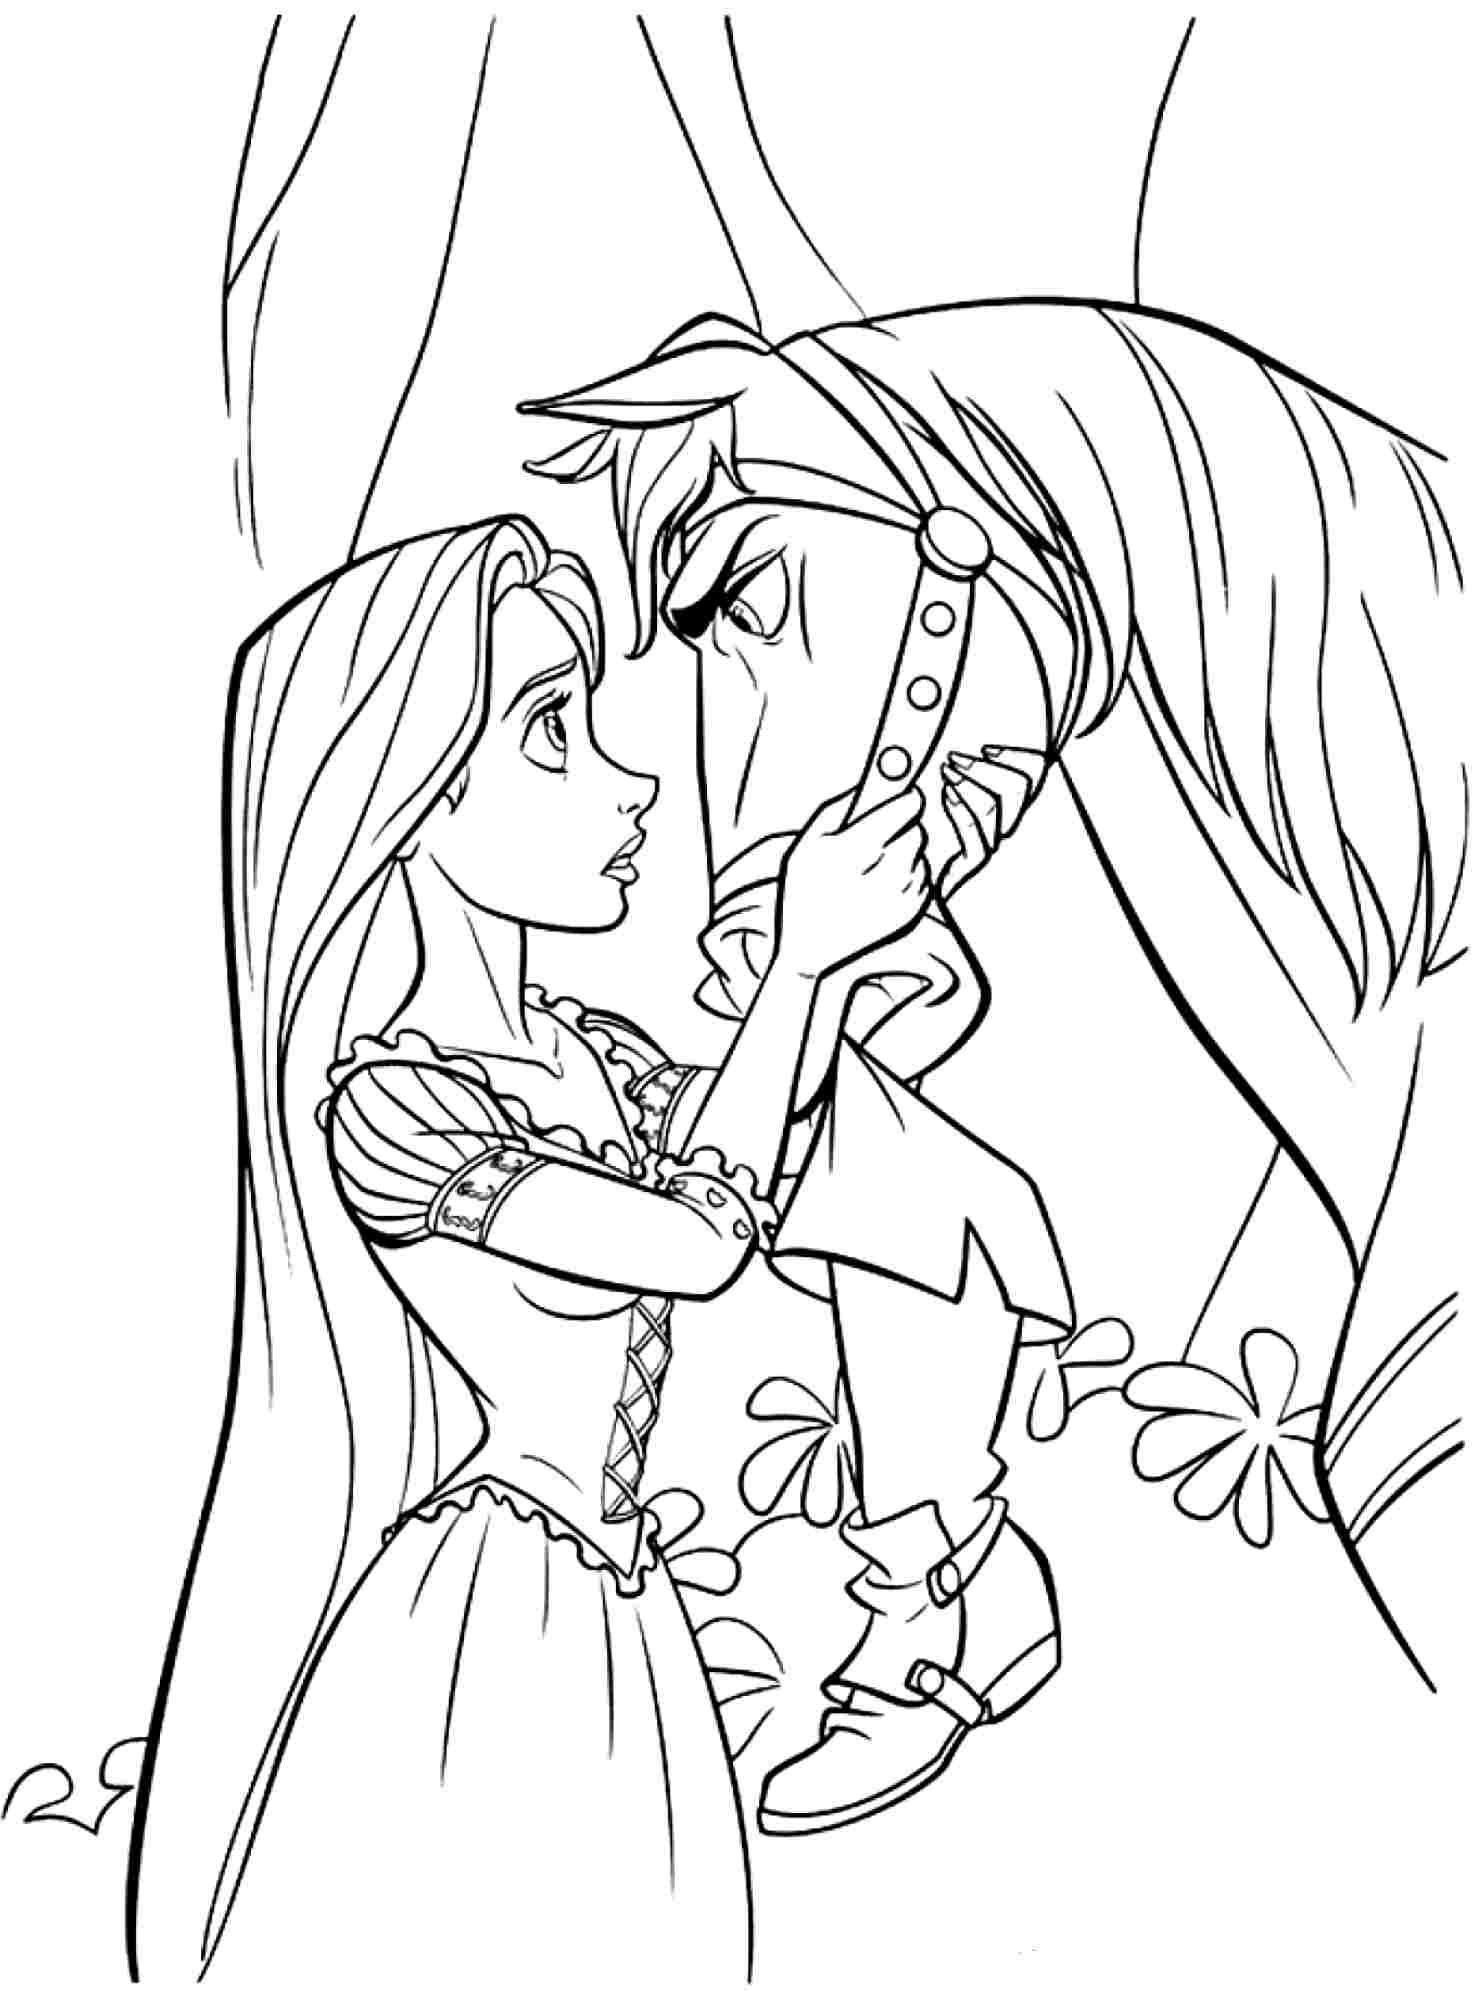 free disney princess tangled rapunzel coloring sheets for kids boys - Tangled Coloring Pages Girls